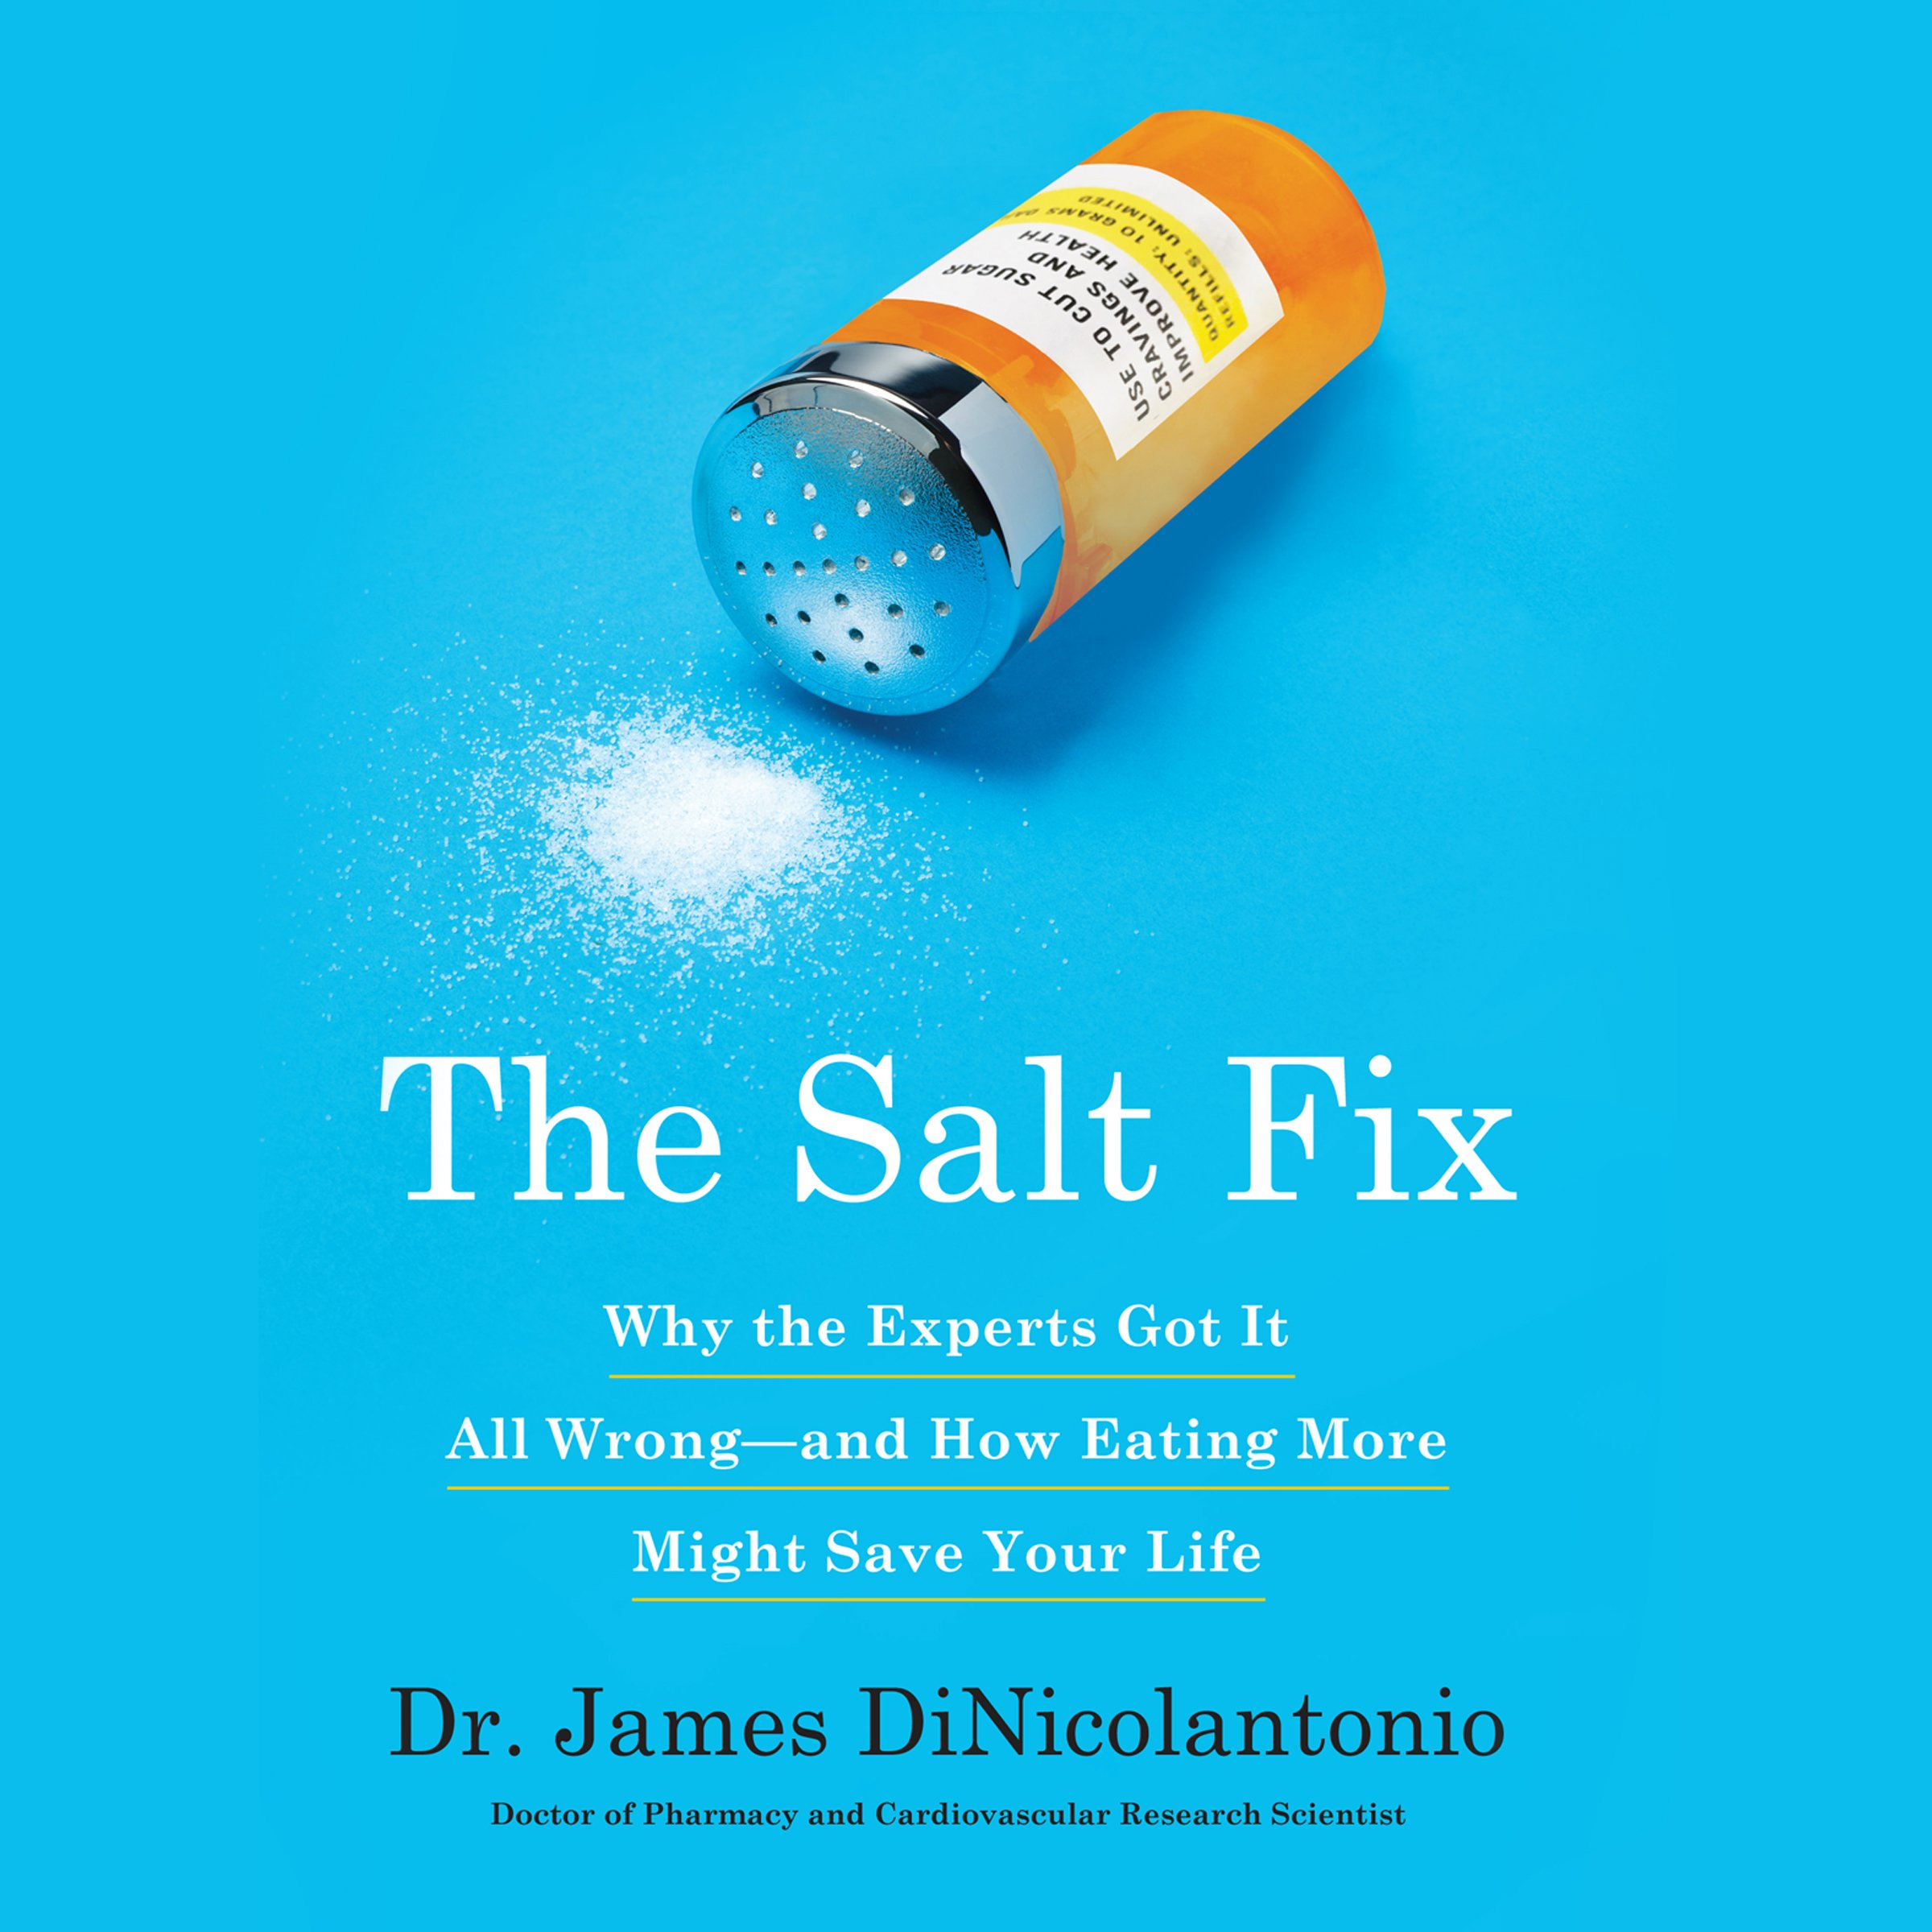 The Salt Fix: Why Experts Got It All Wrong - and How Eating More Might Save Your Life